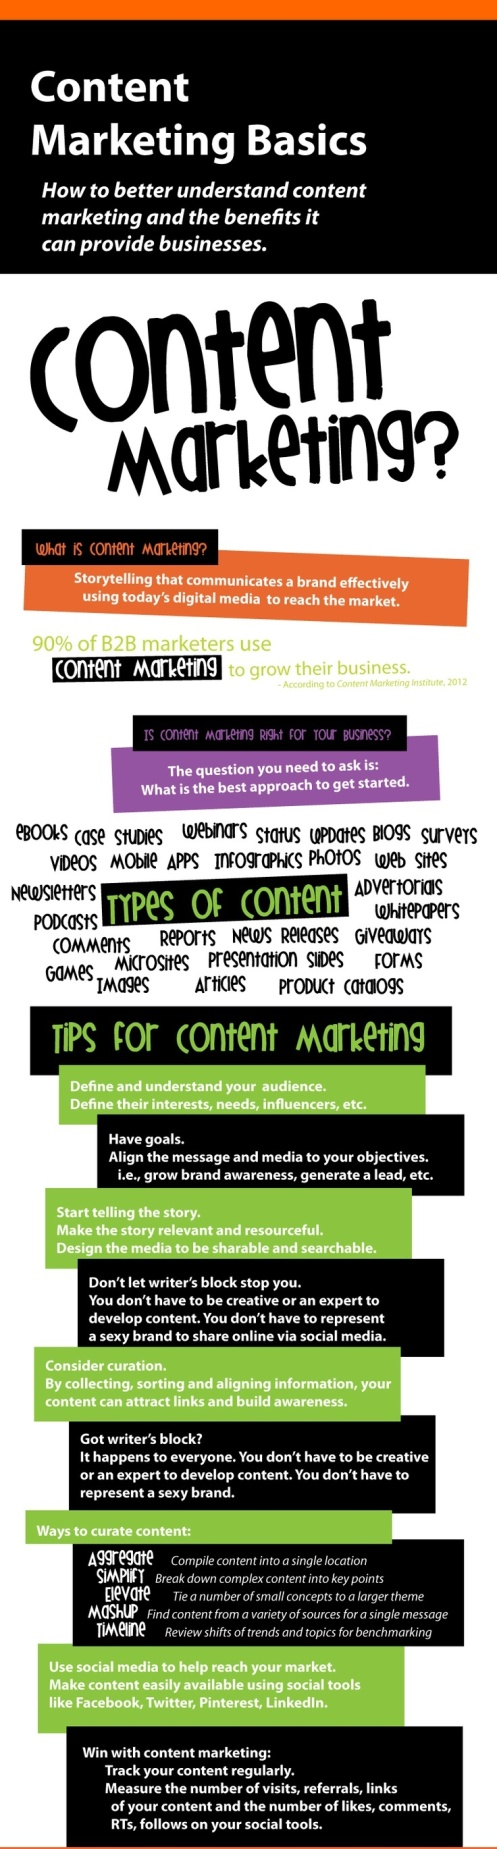 Do You Know About The Benifits Of Content Marketing By EBriks Infotech